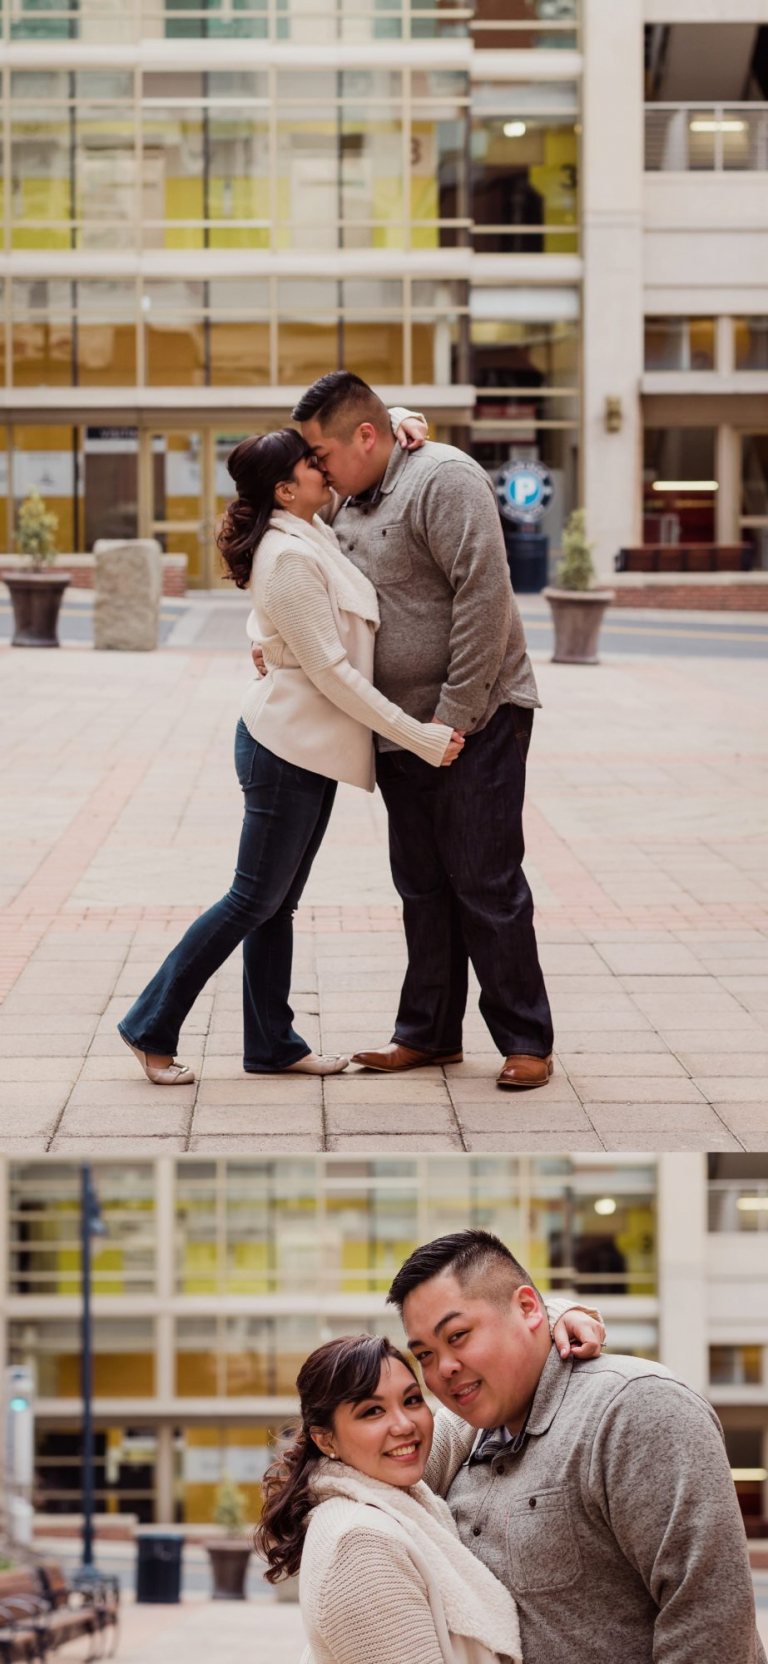 Angela Powell Woulfe, Engagement and Wedding Photographer